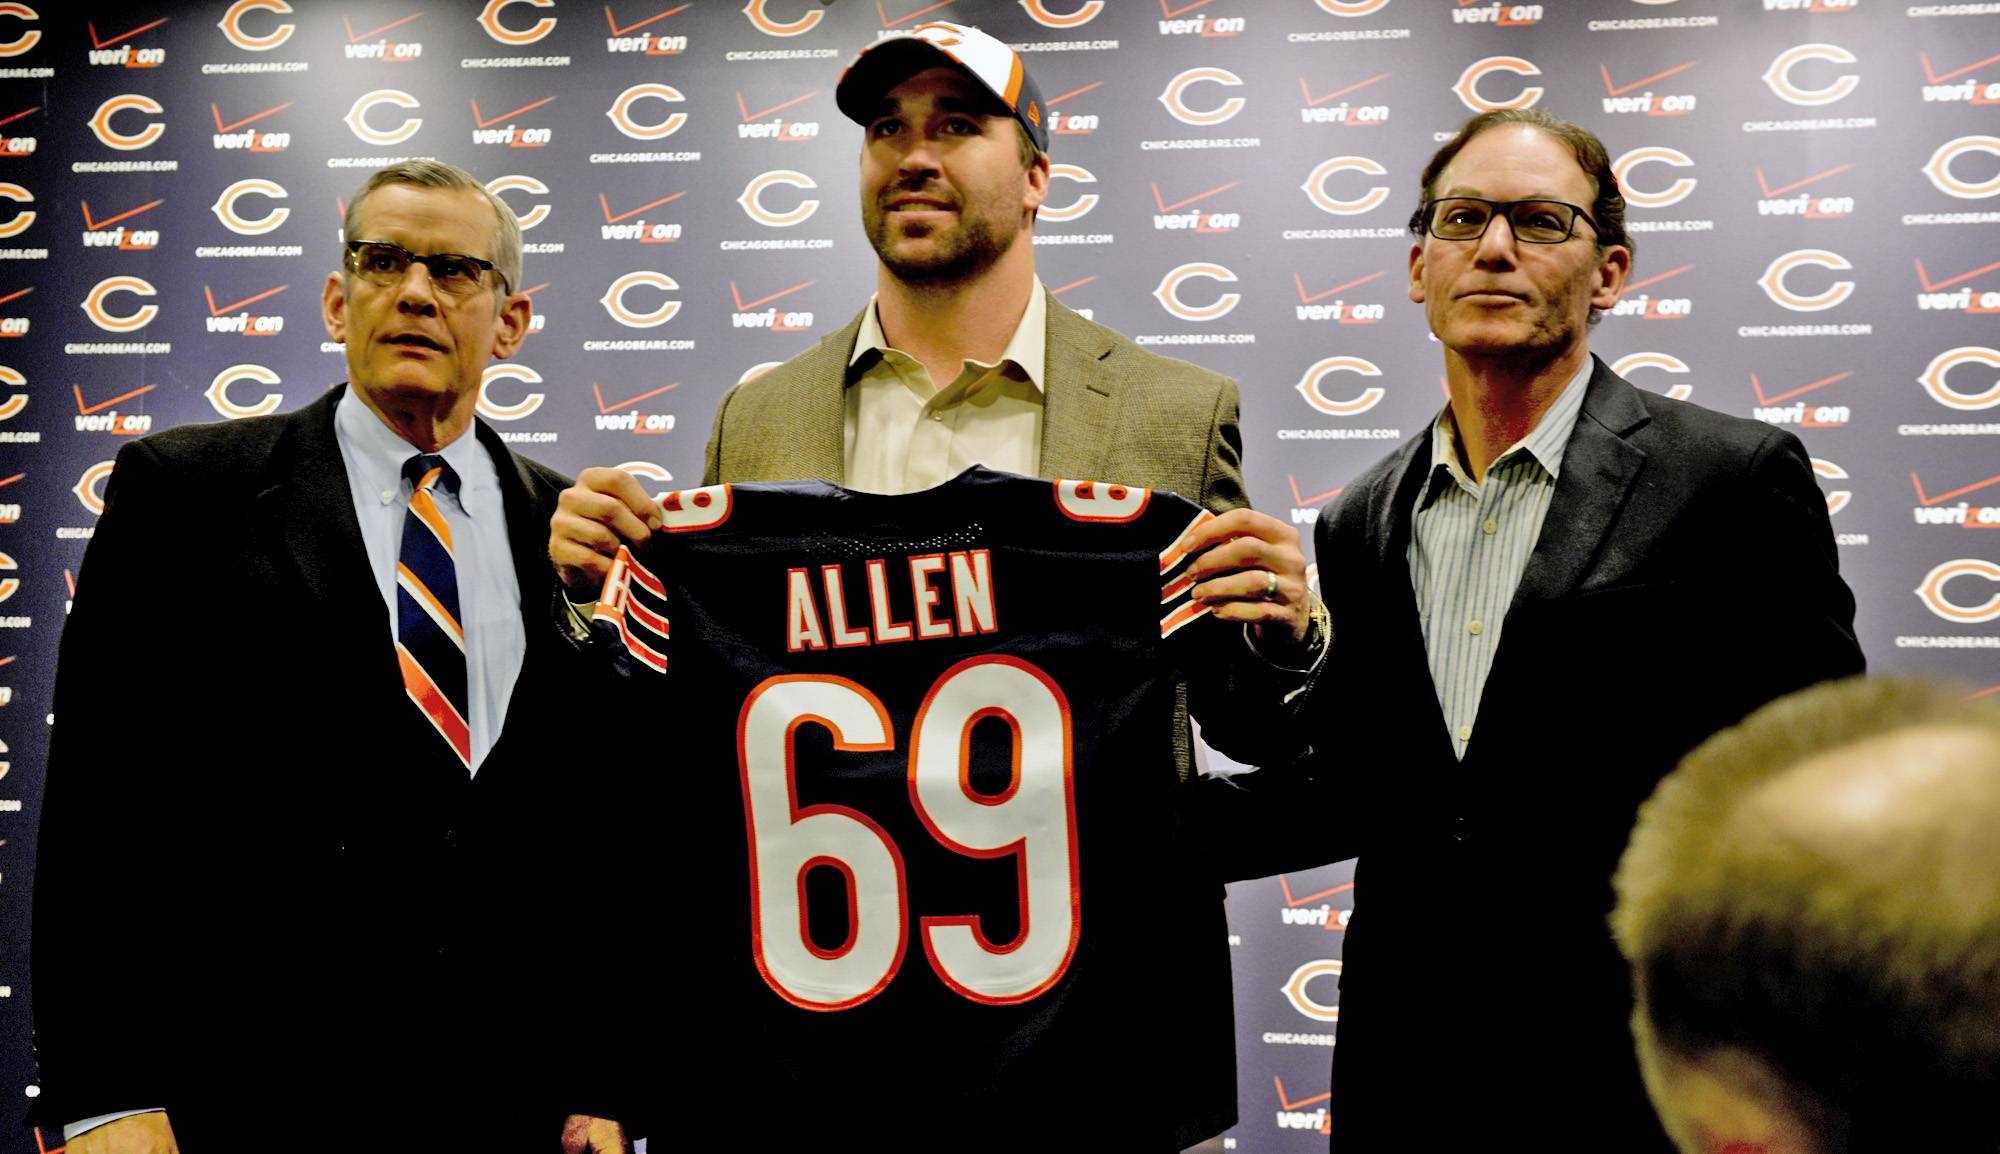 Chicago GM Phil Emery, left, poses for a photo with new Bear Jared Allen and his agent, Ken Harris, at a news conference Monday in Lake Forest.